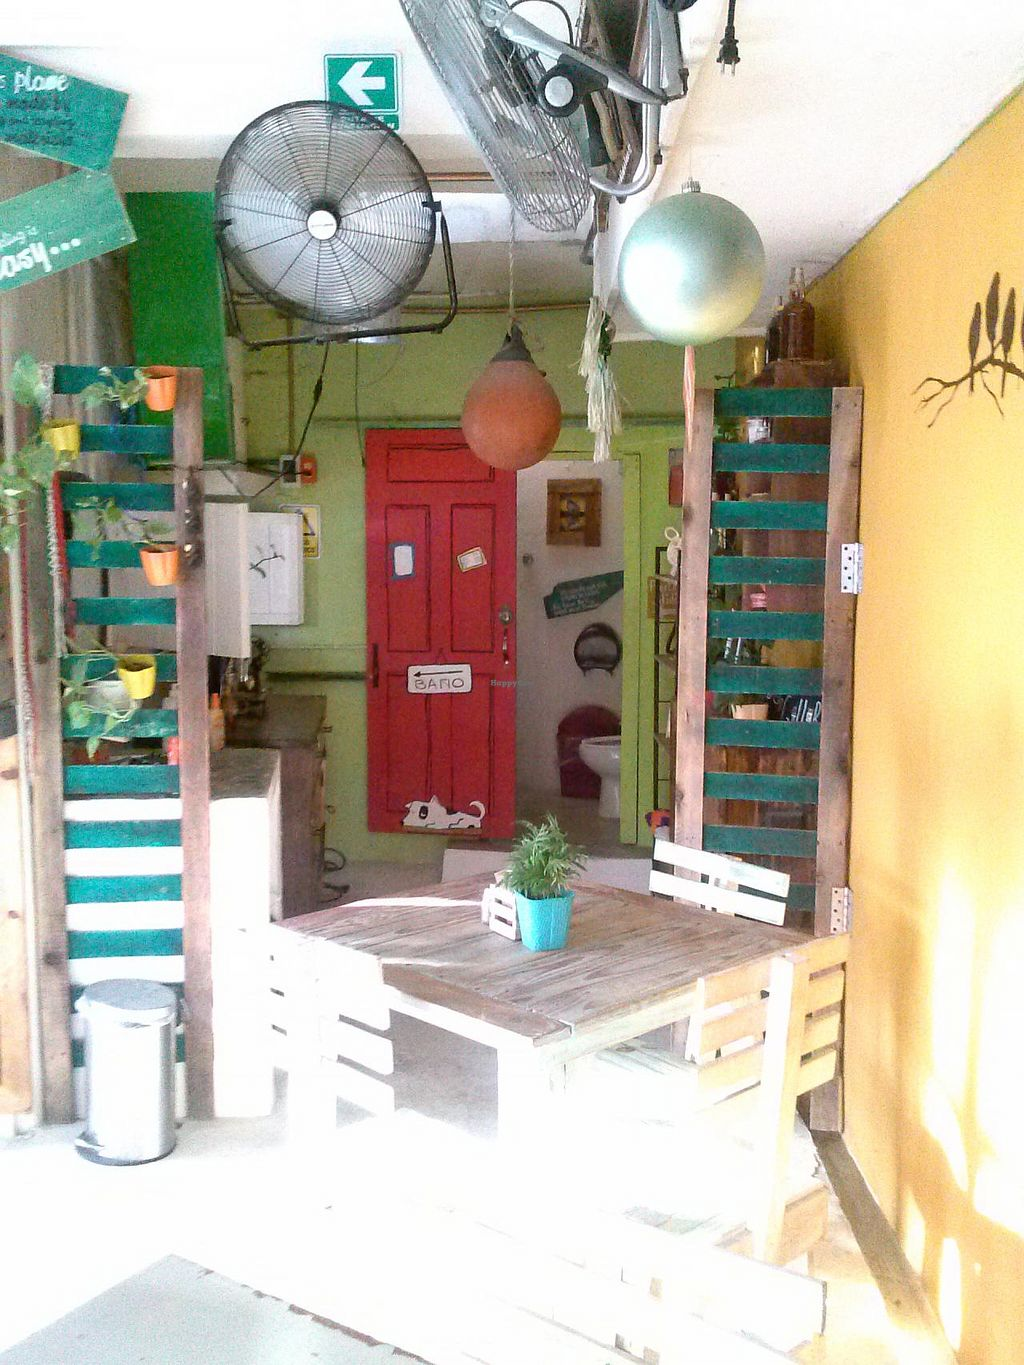 """Photo of Greenverde Restaurant  by <a href=""""/members/profile/Heather%20Vegan%20Diggs"""">Heather Vegan Diggs</a> <br/>Cute interior of restaurant! <br/> January 7, 2015  - <a href='/contact/abuse/image/54386/89734'>Report</a>"""